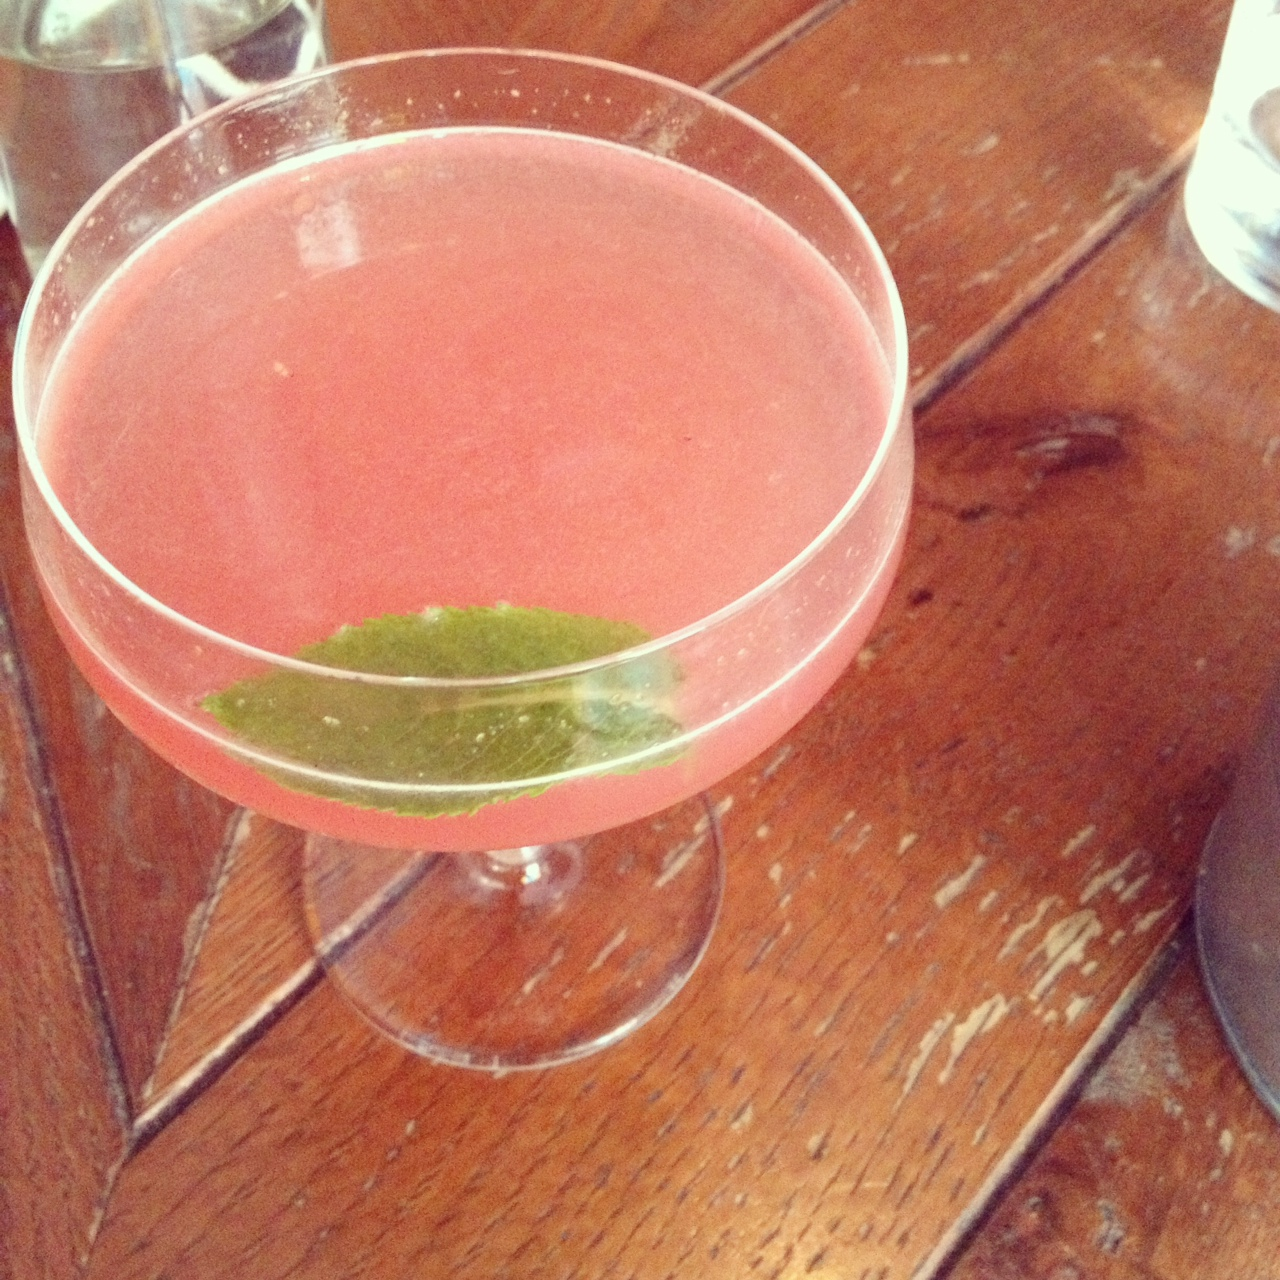 virgin cocktail Mary Celeste